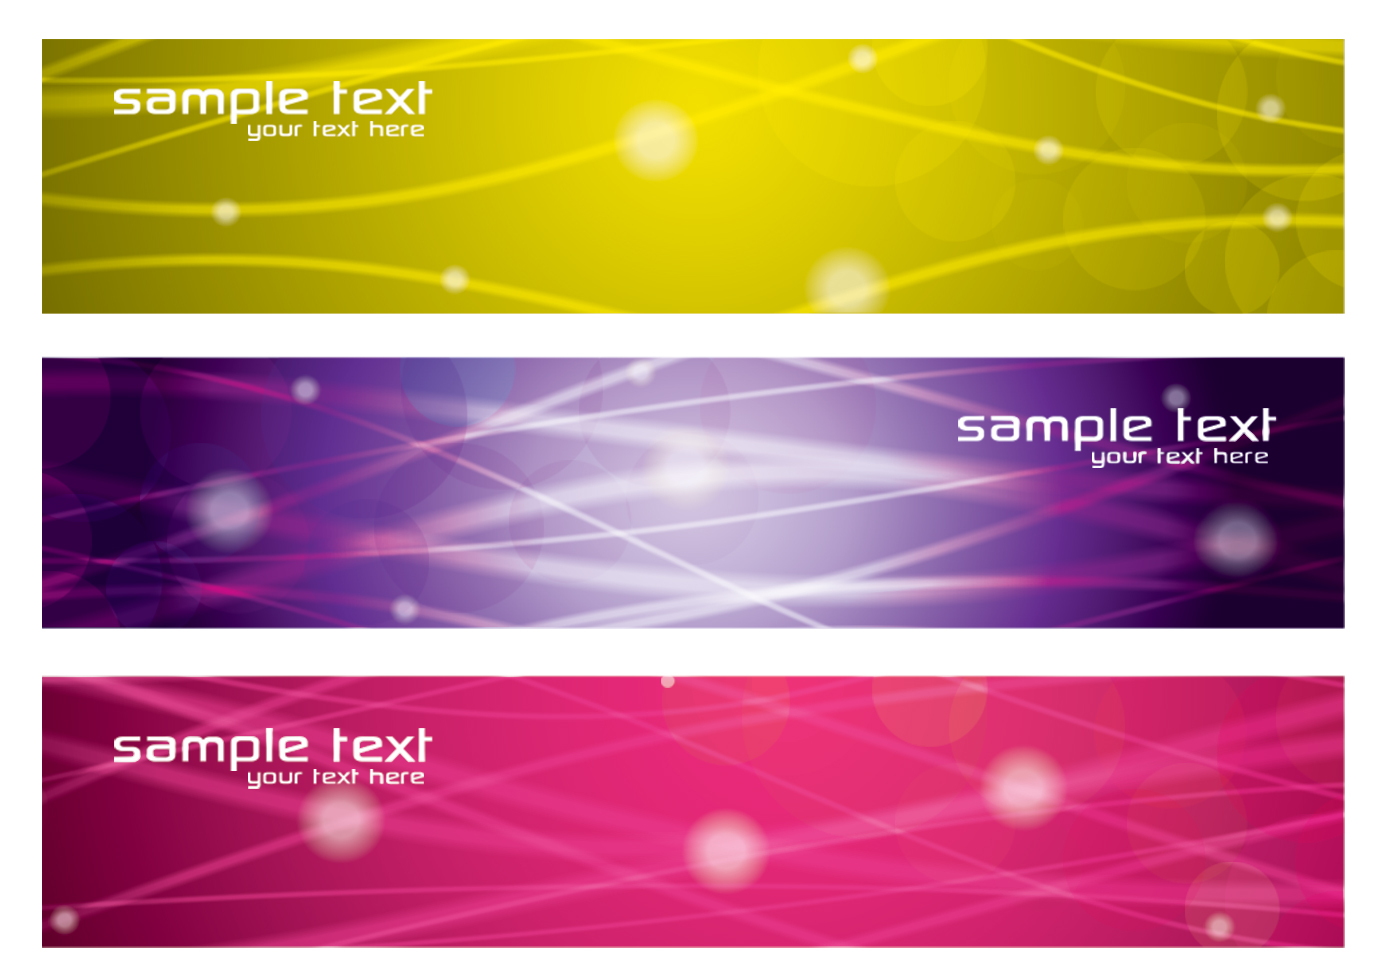 Line Texture Psd : Colorful glowing lines banners psd pack free photoshop